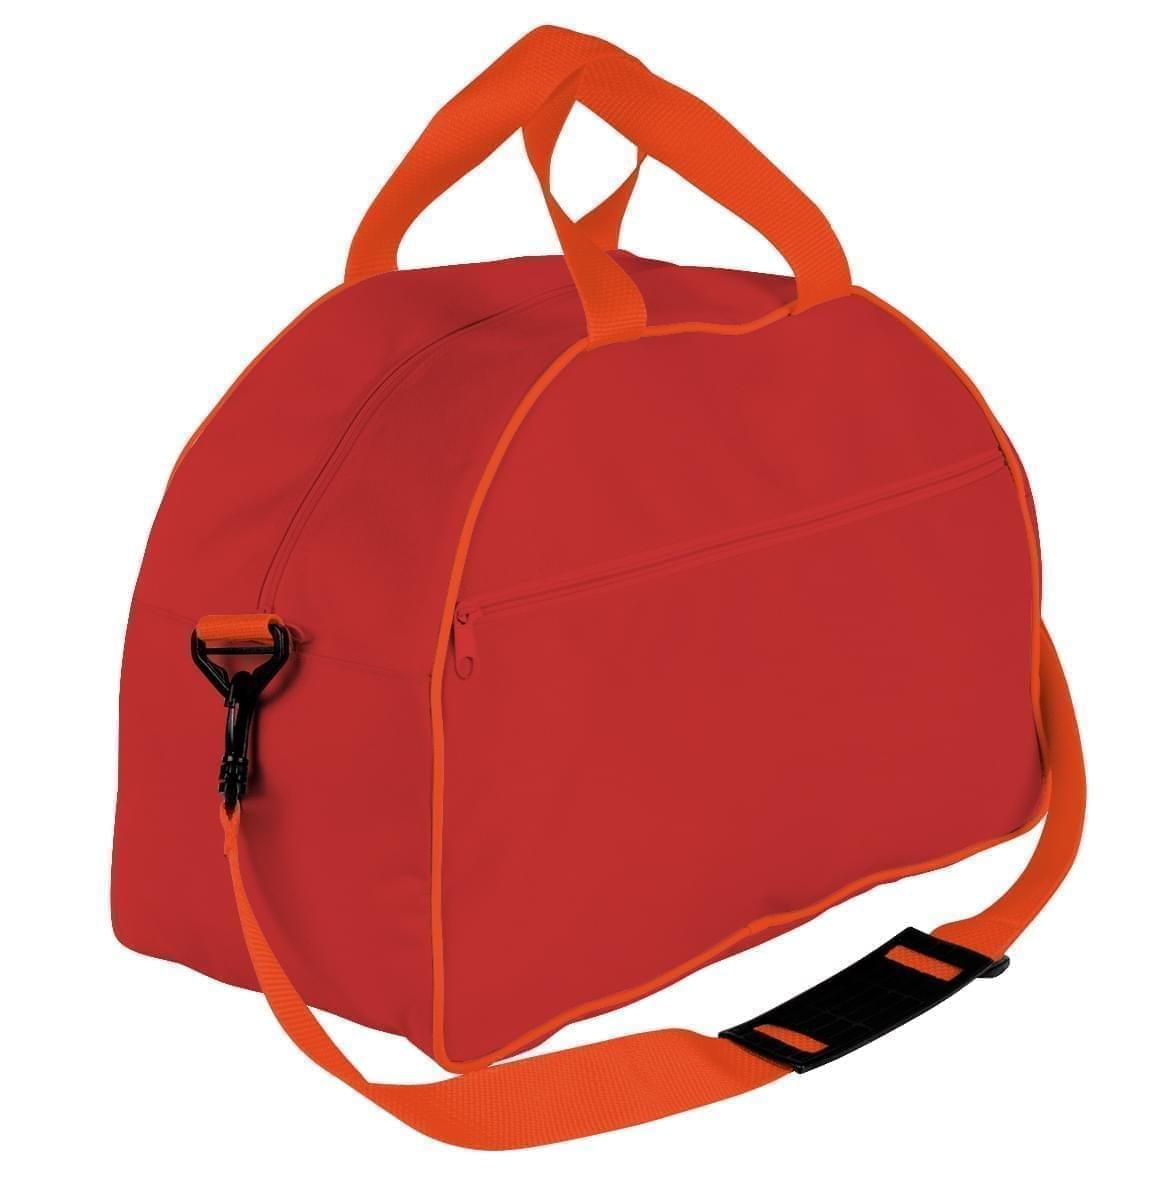 USA Made Nylon Poly Weekender Duffel Bags, Red-Orange, 6PKV32JAZ0